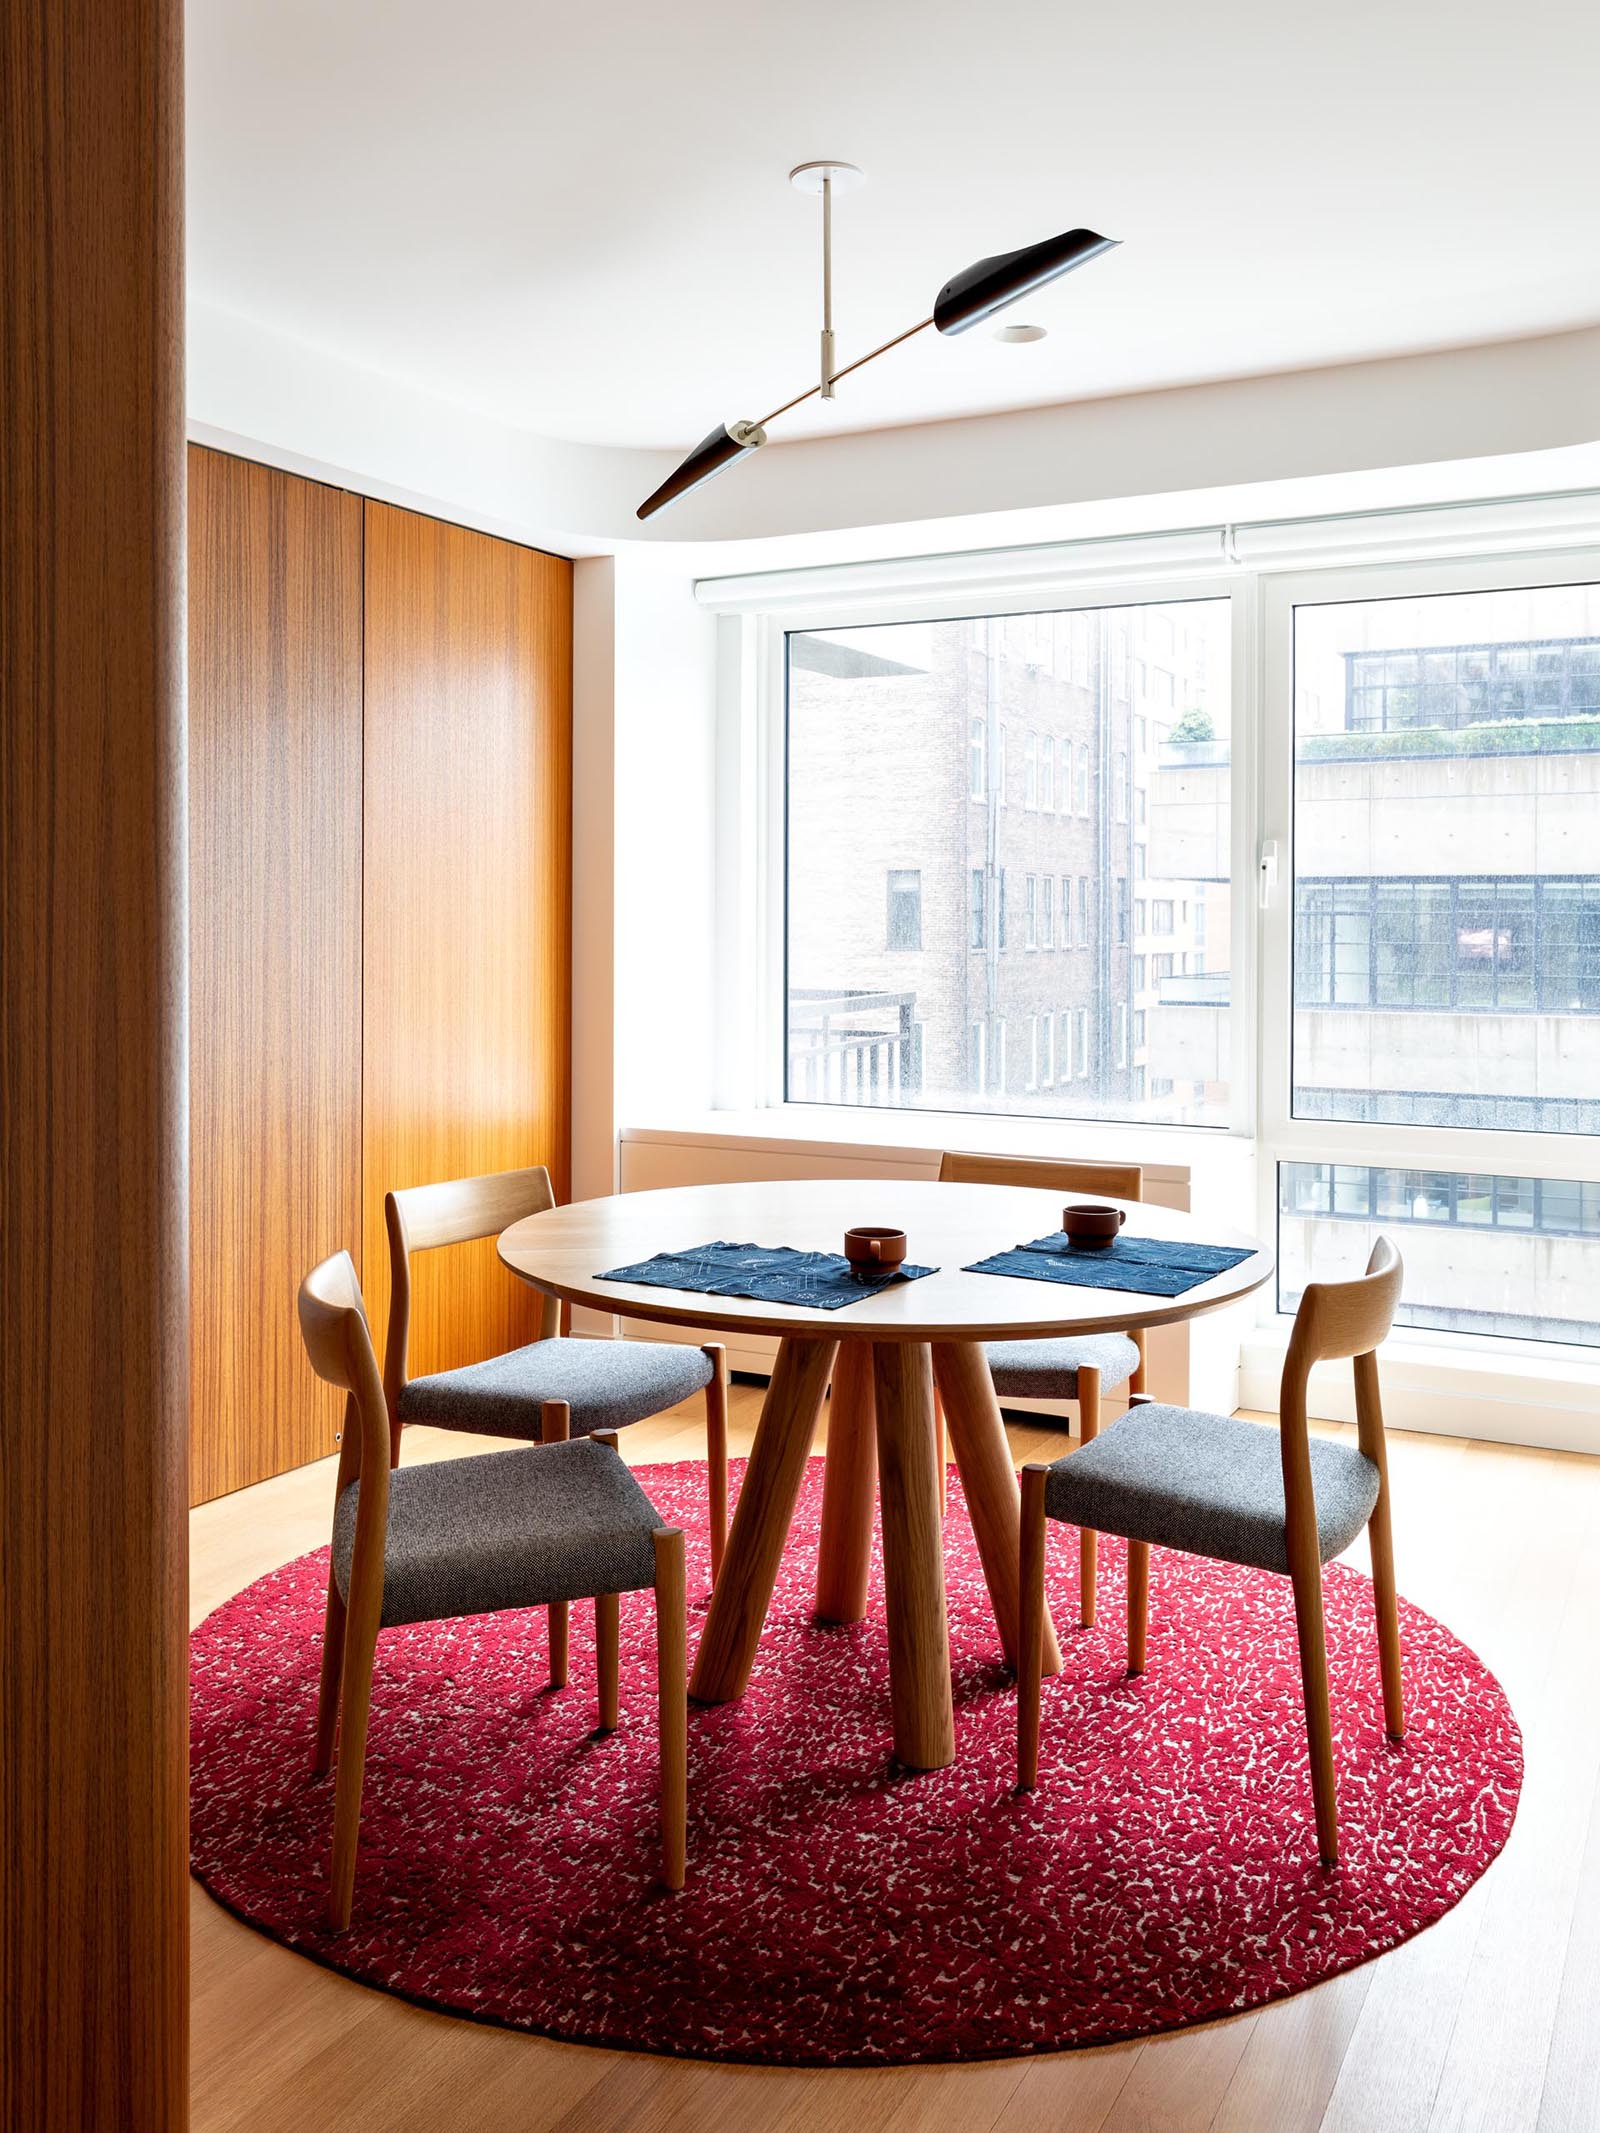 A modern dining room with a colorful burgundy/pink rug with wood furniture.